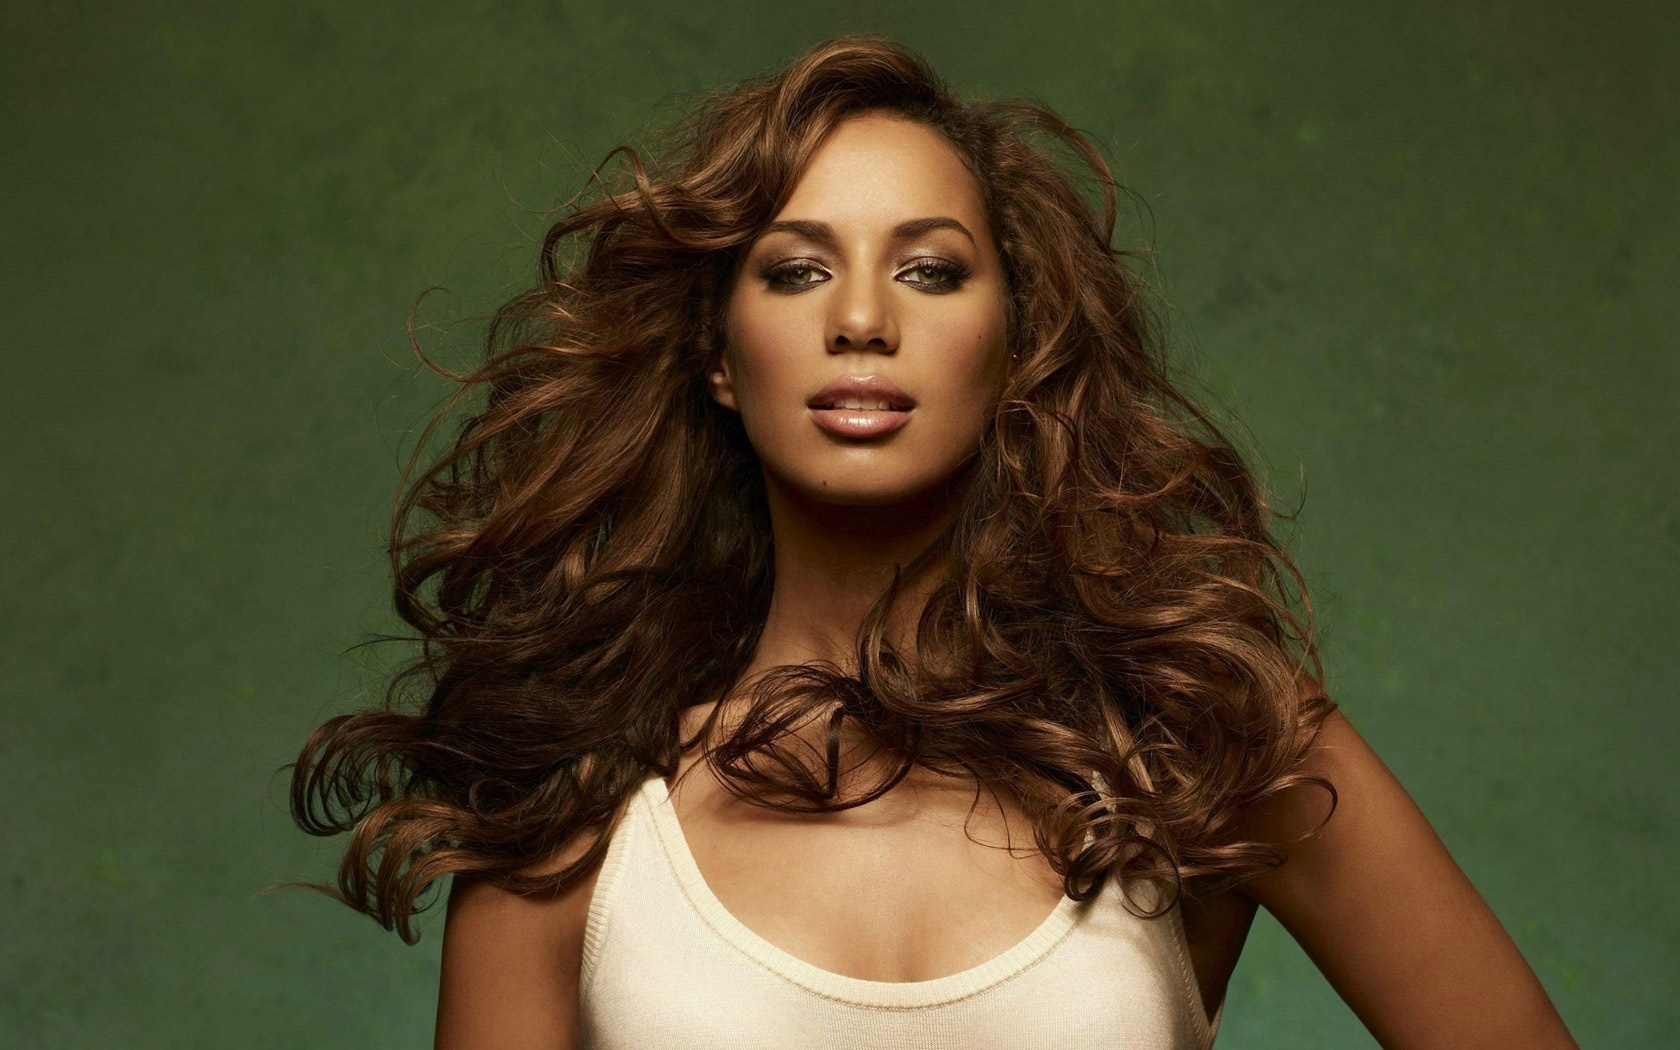 http://images2.fanpop.com/images/photos/6600000/Leona-leona-lewis-6681383-1680-1050.jpg